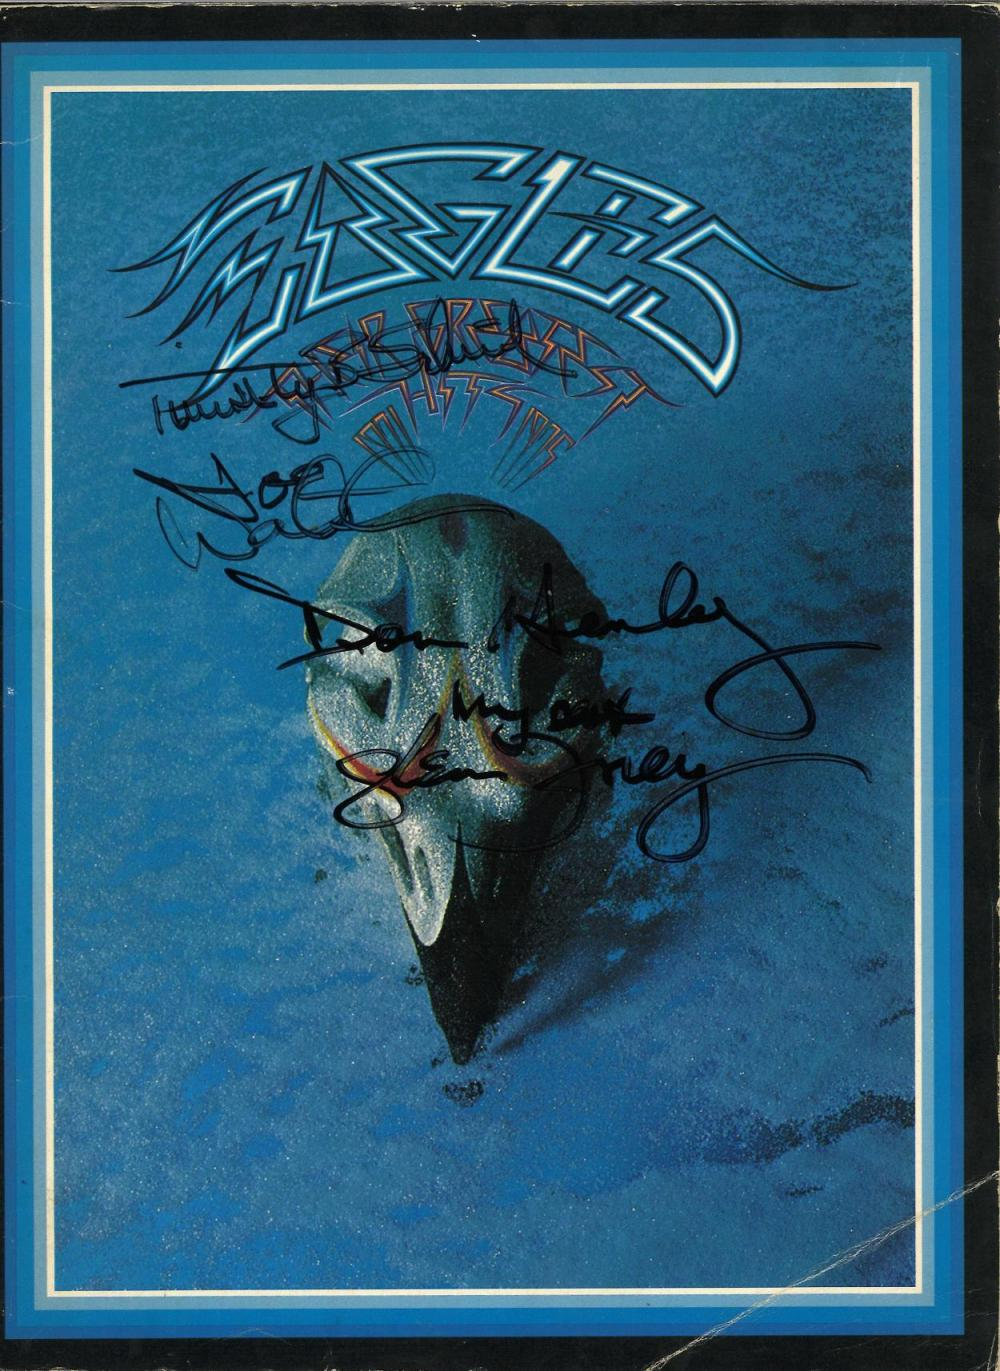 The Eagles signed Take it Easy music score softback book. Good Condition. All signed pieces come